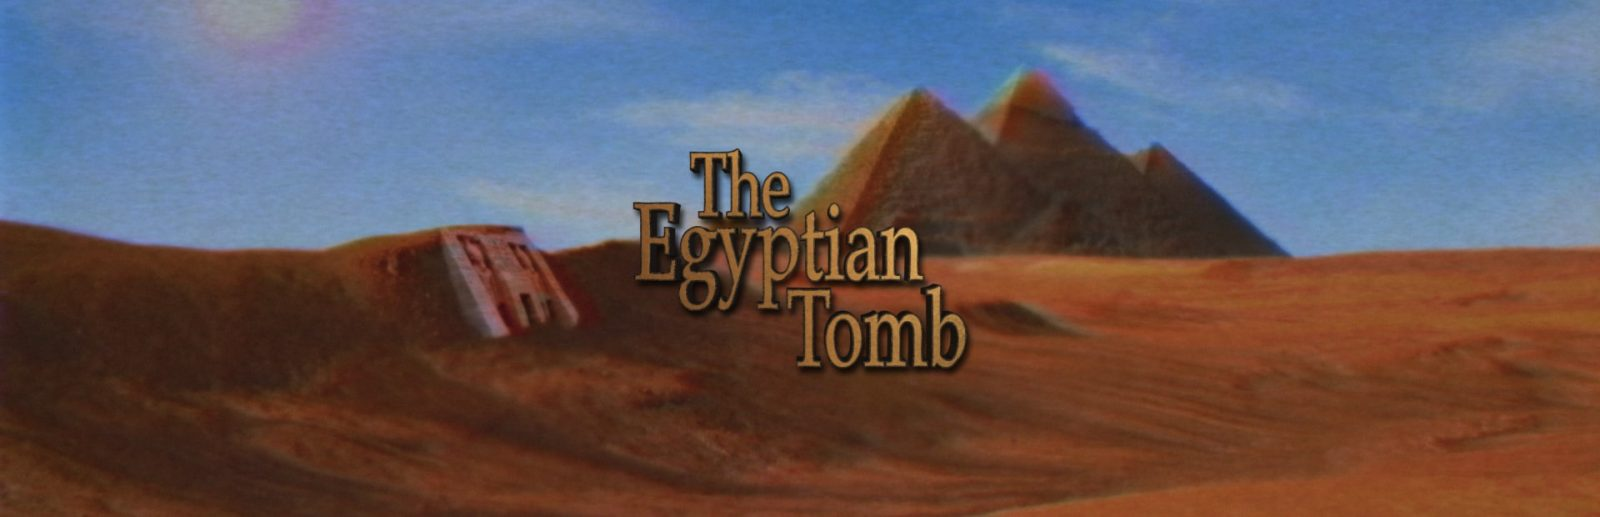 """Clue chase's egyptian tomb banner, the room title """"egyptian tomb"""" is displayed over a background of pyramids and desert"""